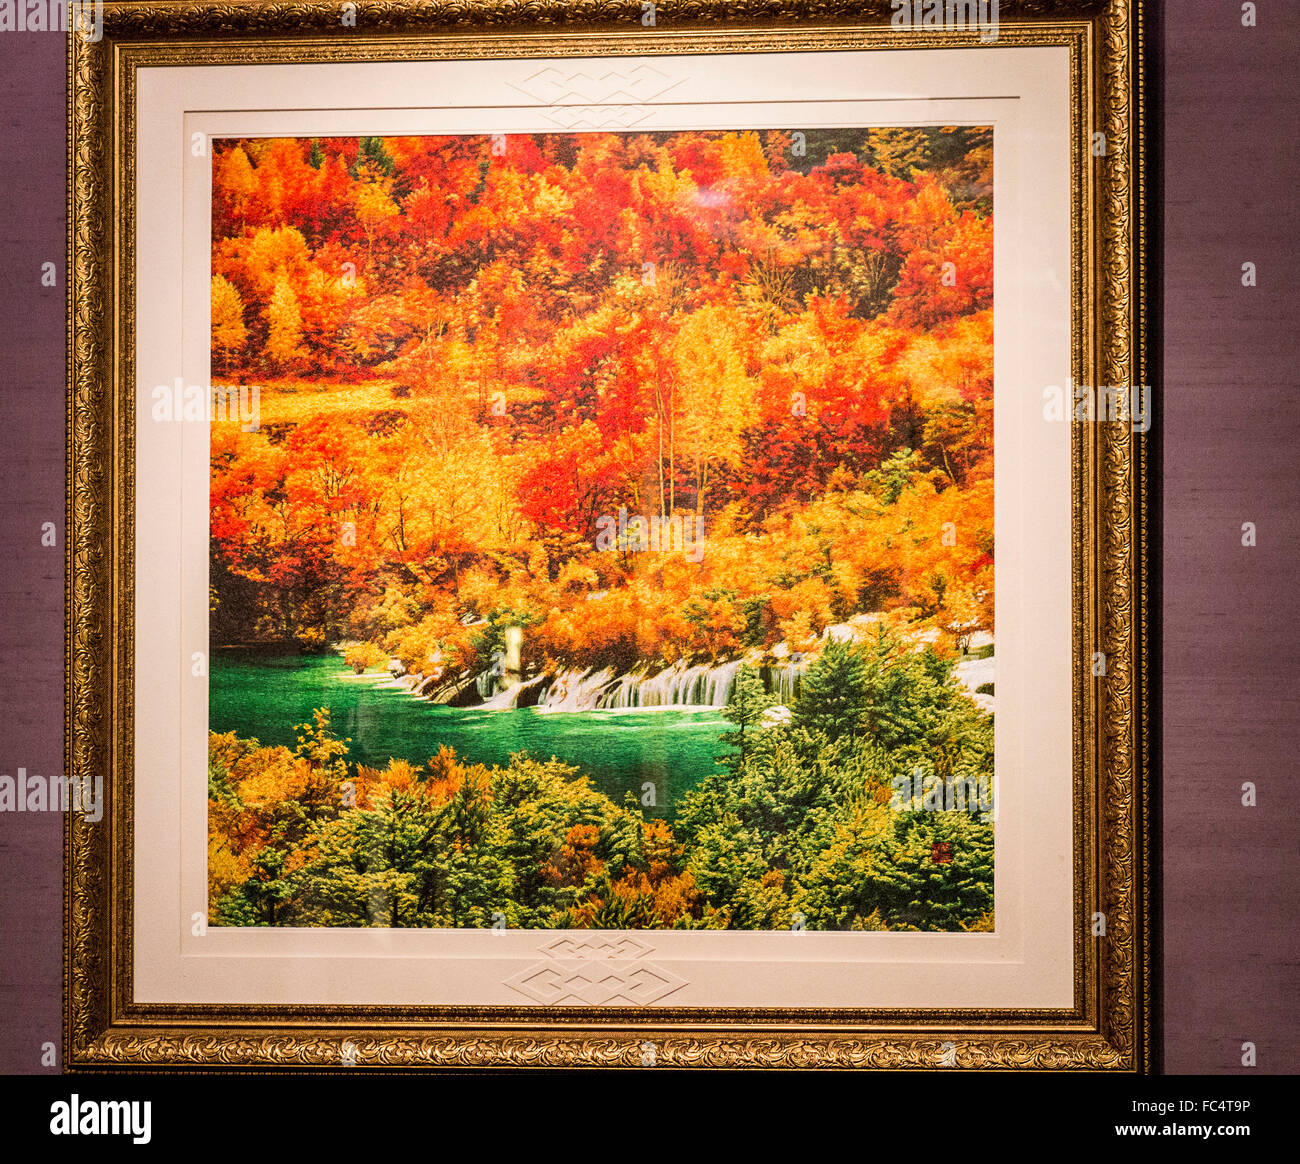 Silk embroidered scene valued at $250,000 US on display at Wensli Silk Museum in Hangzhou, China. - Stock Image